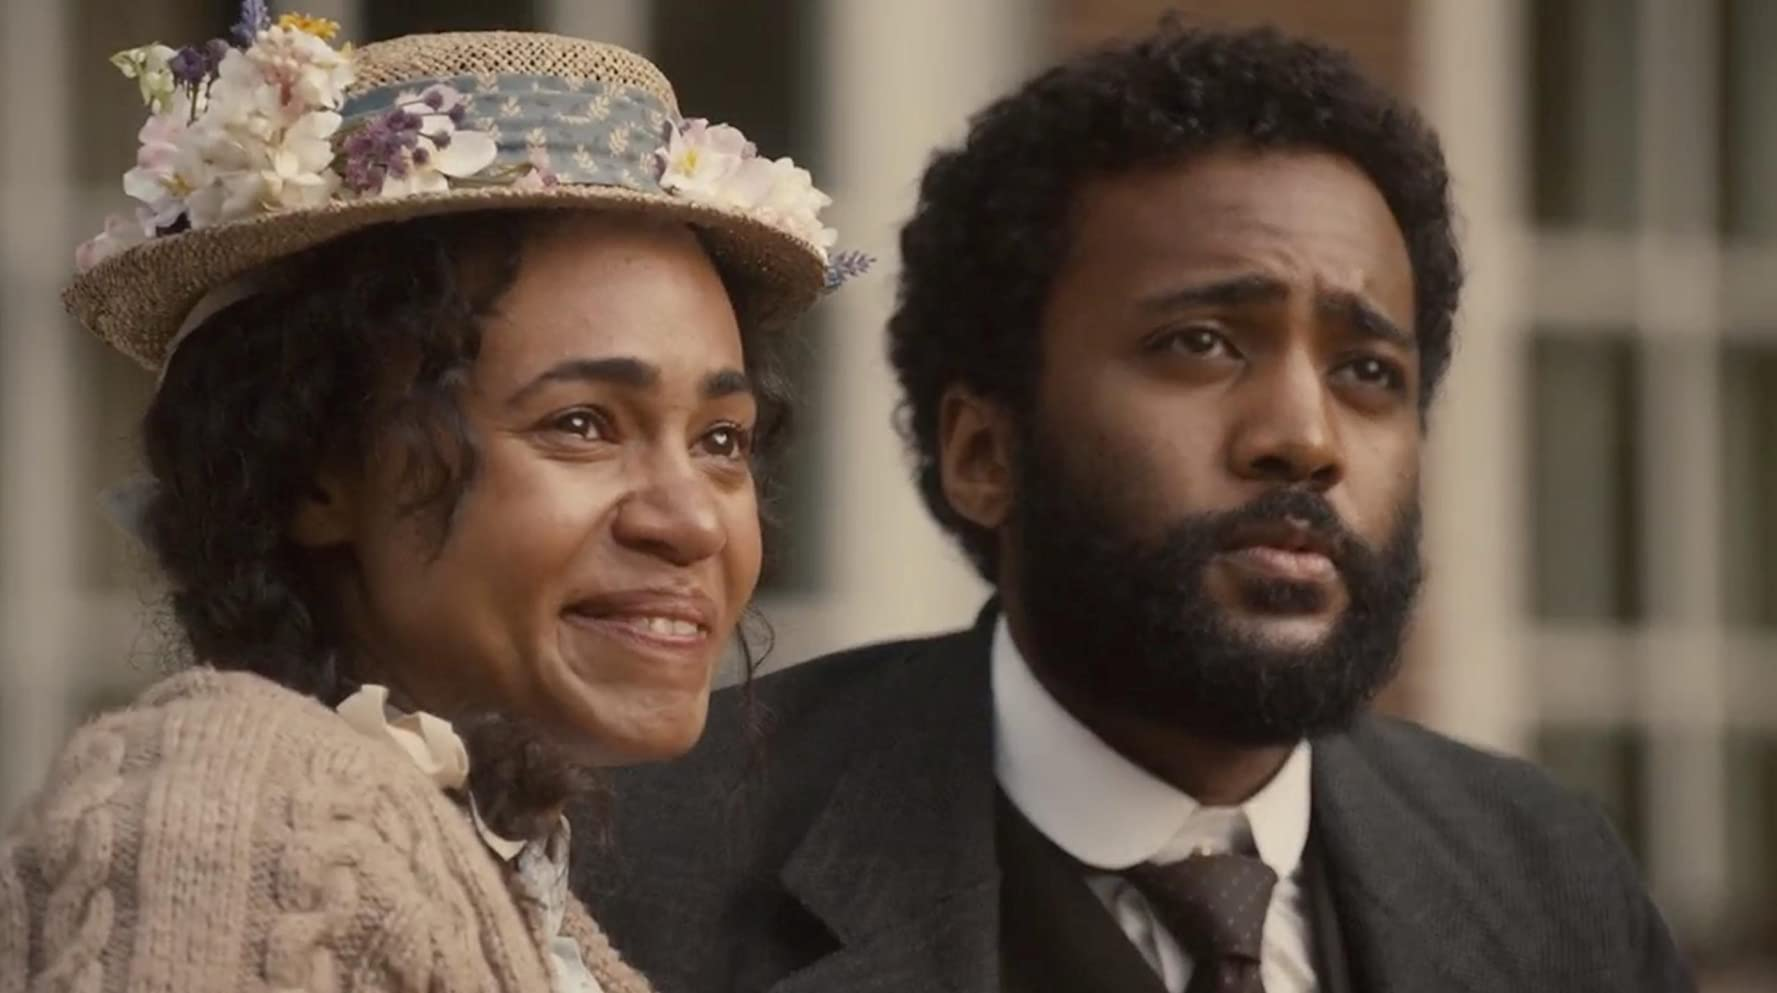 Dalmar Abuzeid and Cara Ricketts in What Can Stop the Determined Heart (2019)